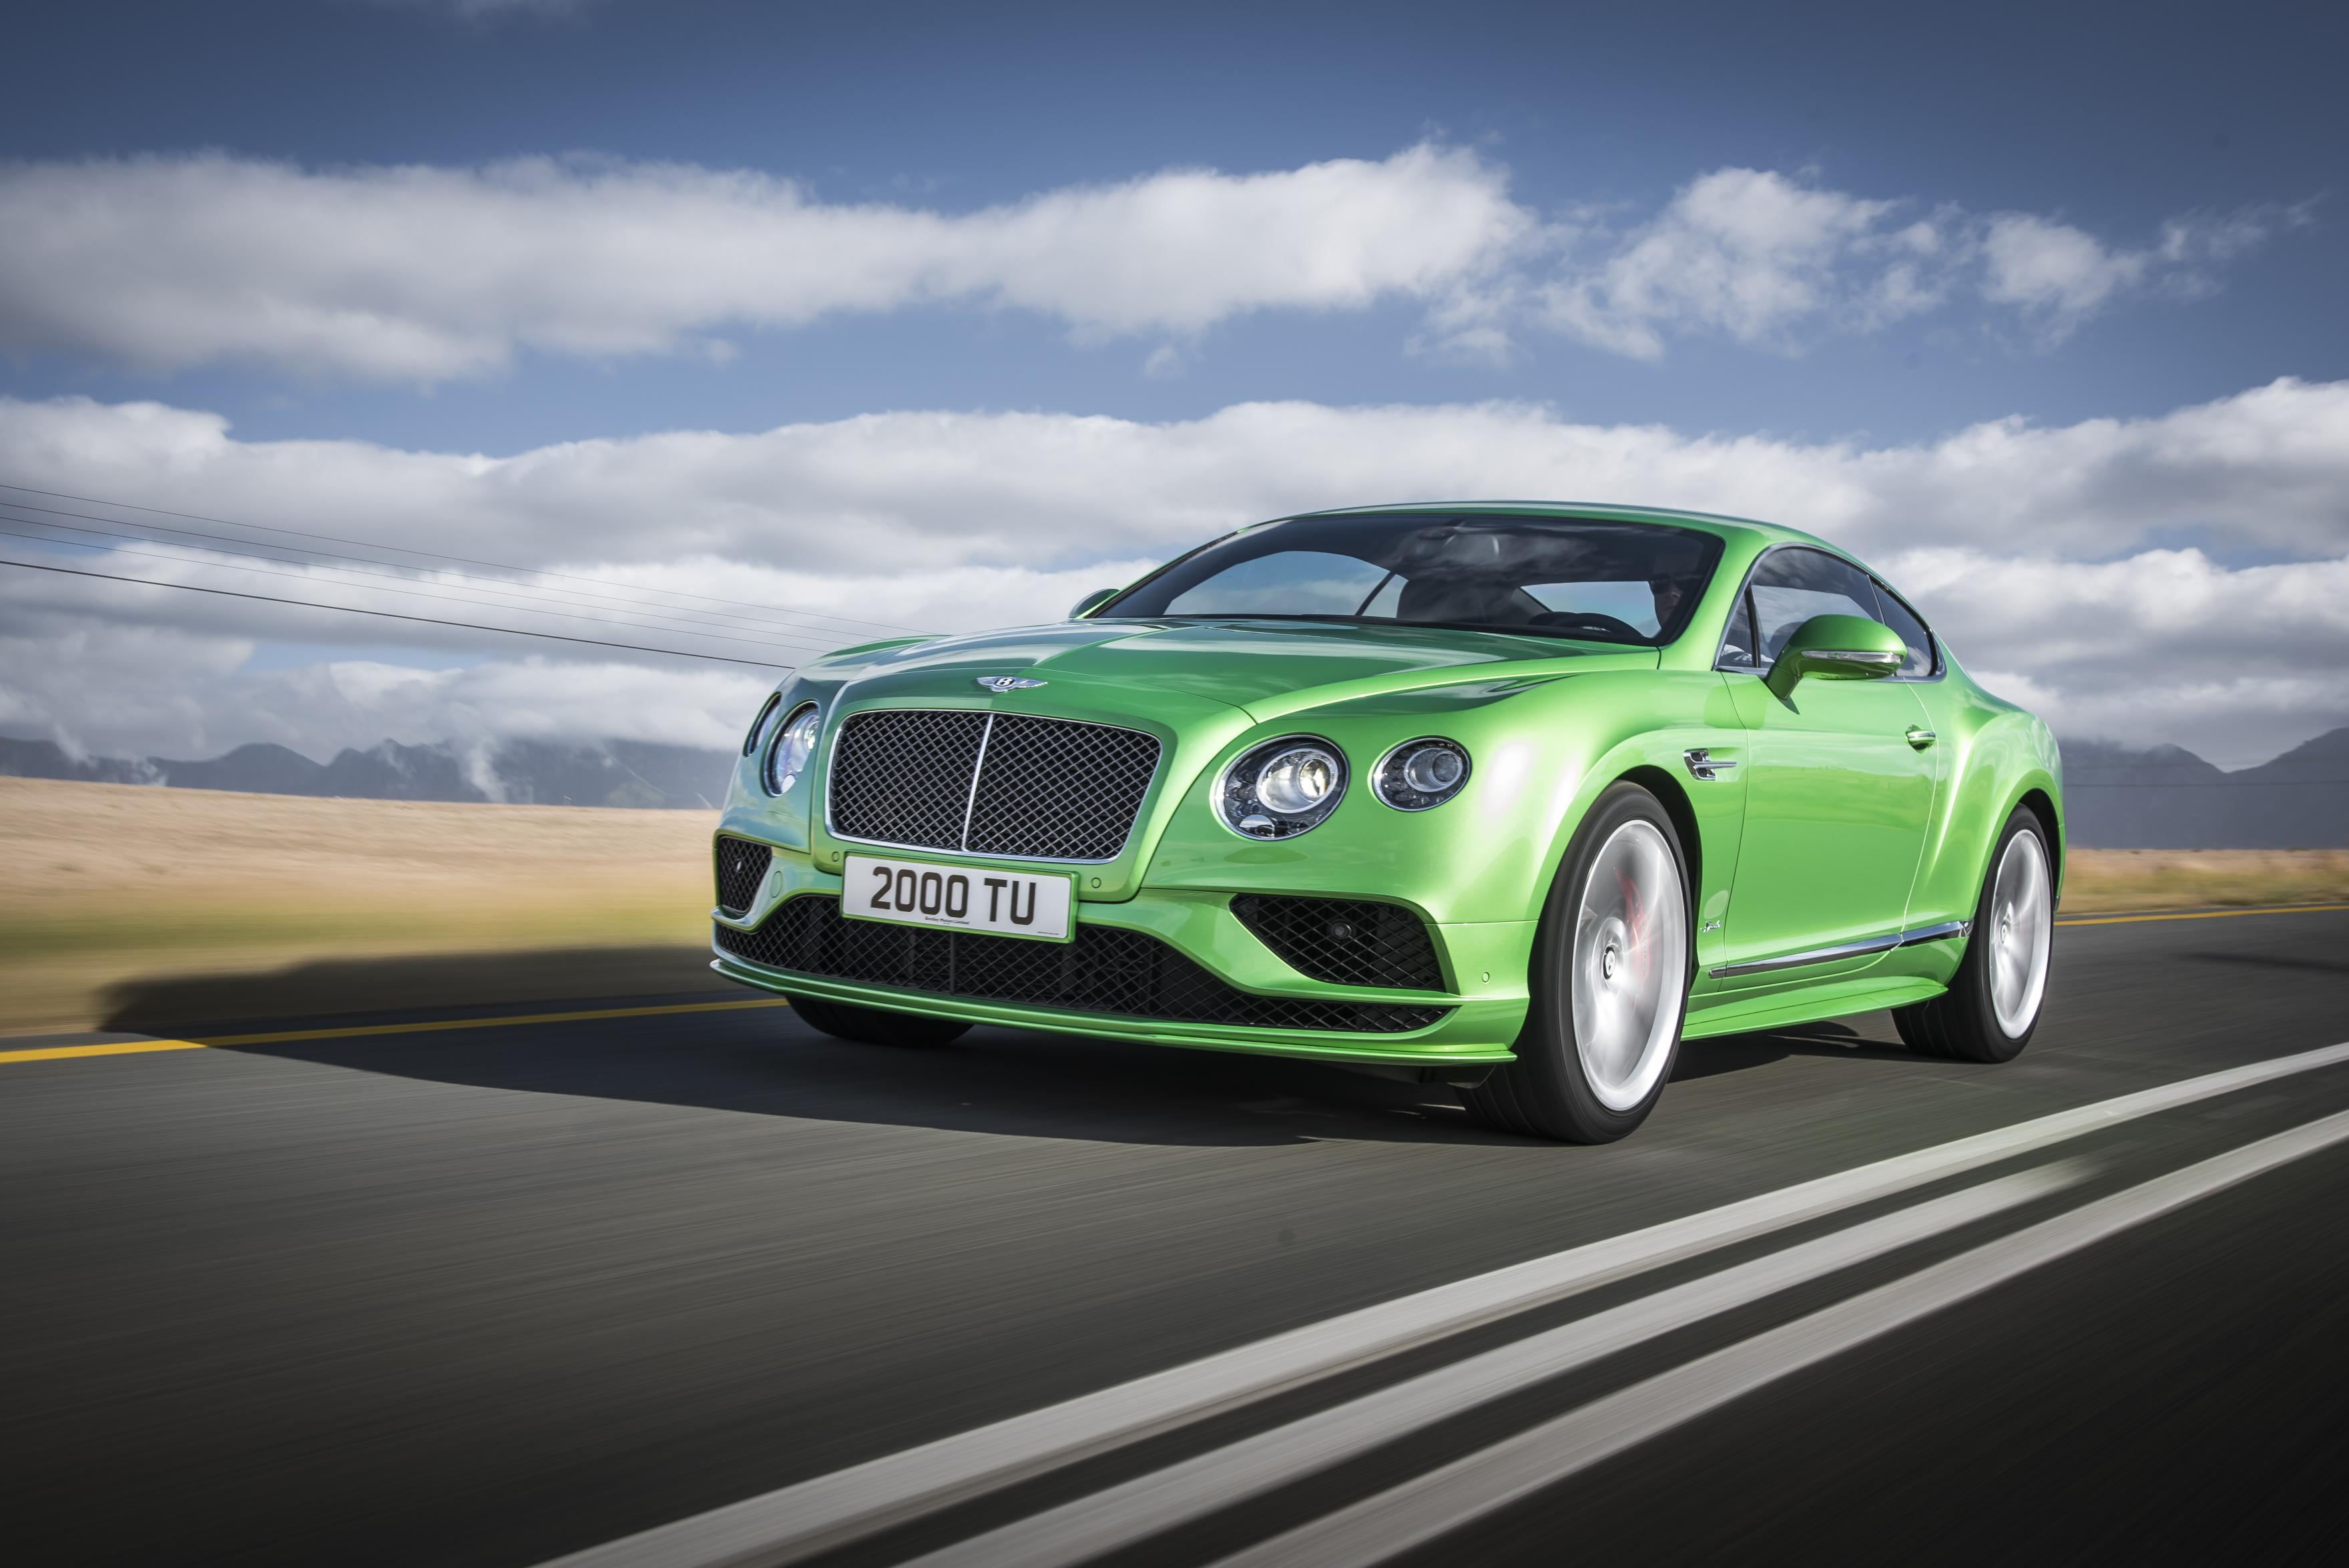 coupe gt new pictures convertible information bentley wallpaper continental